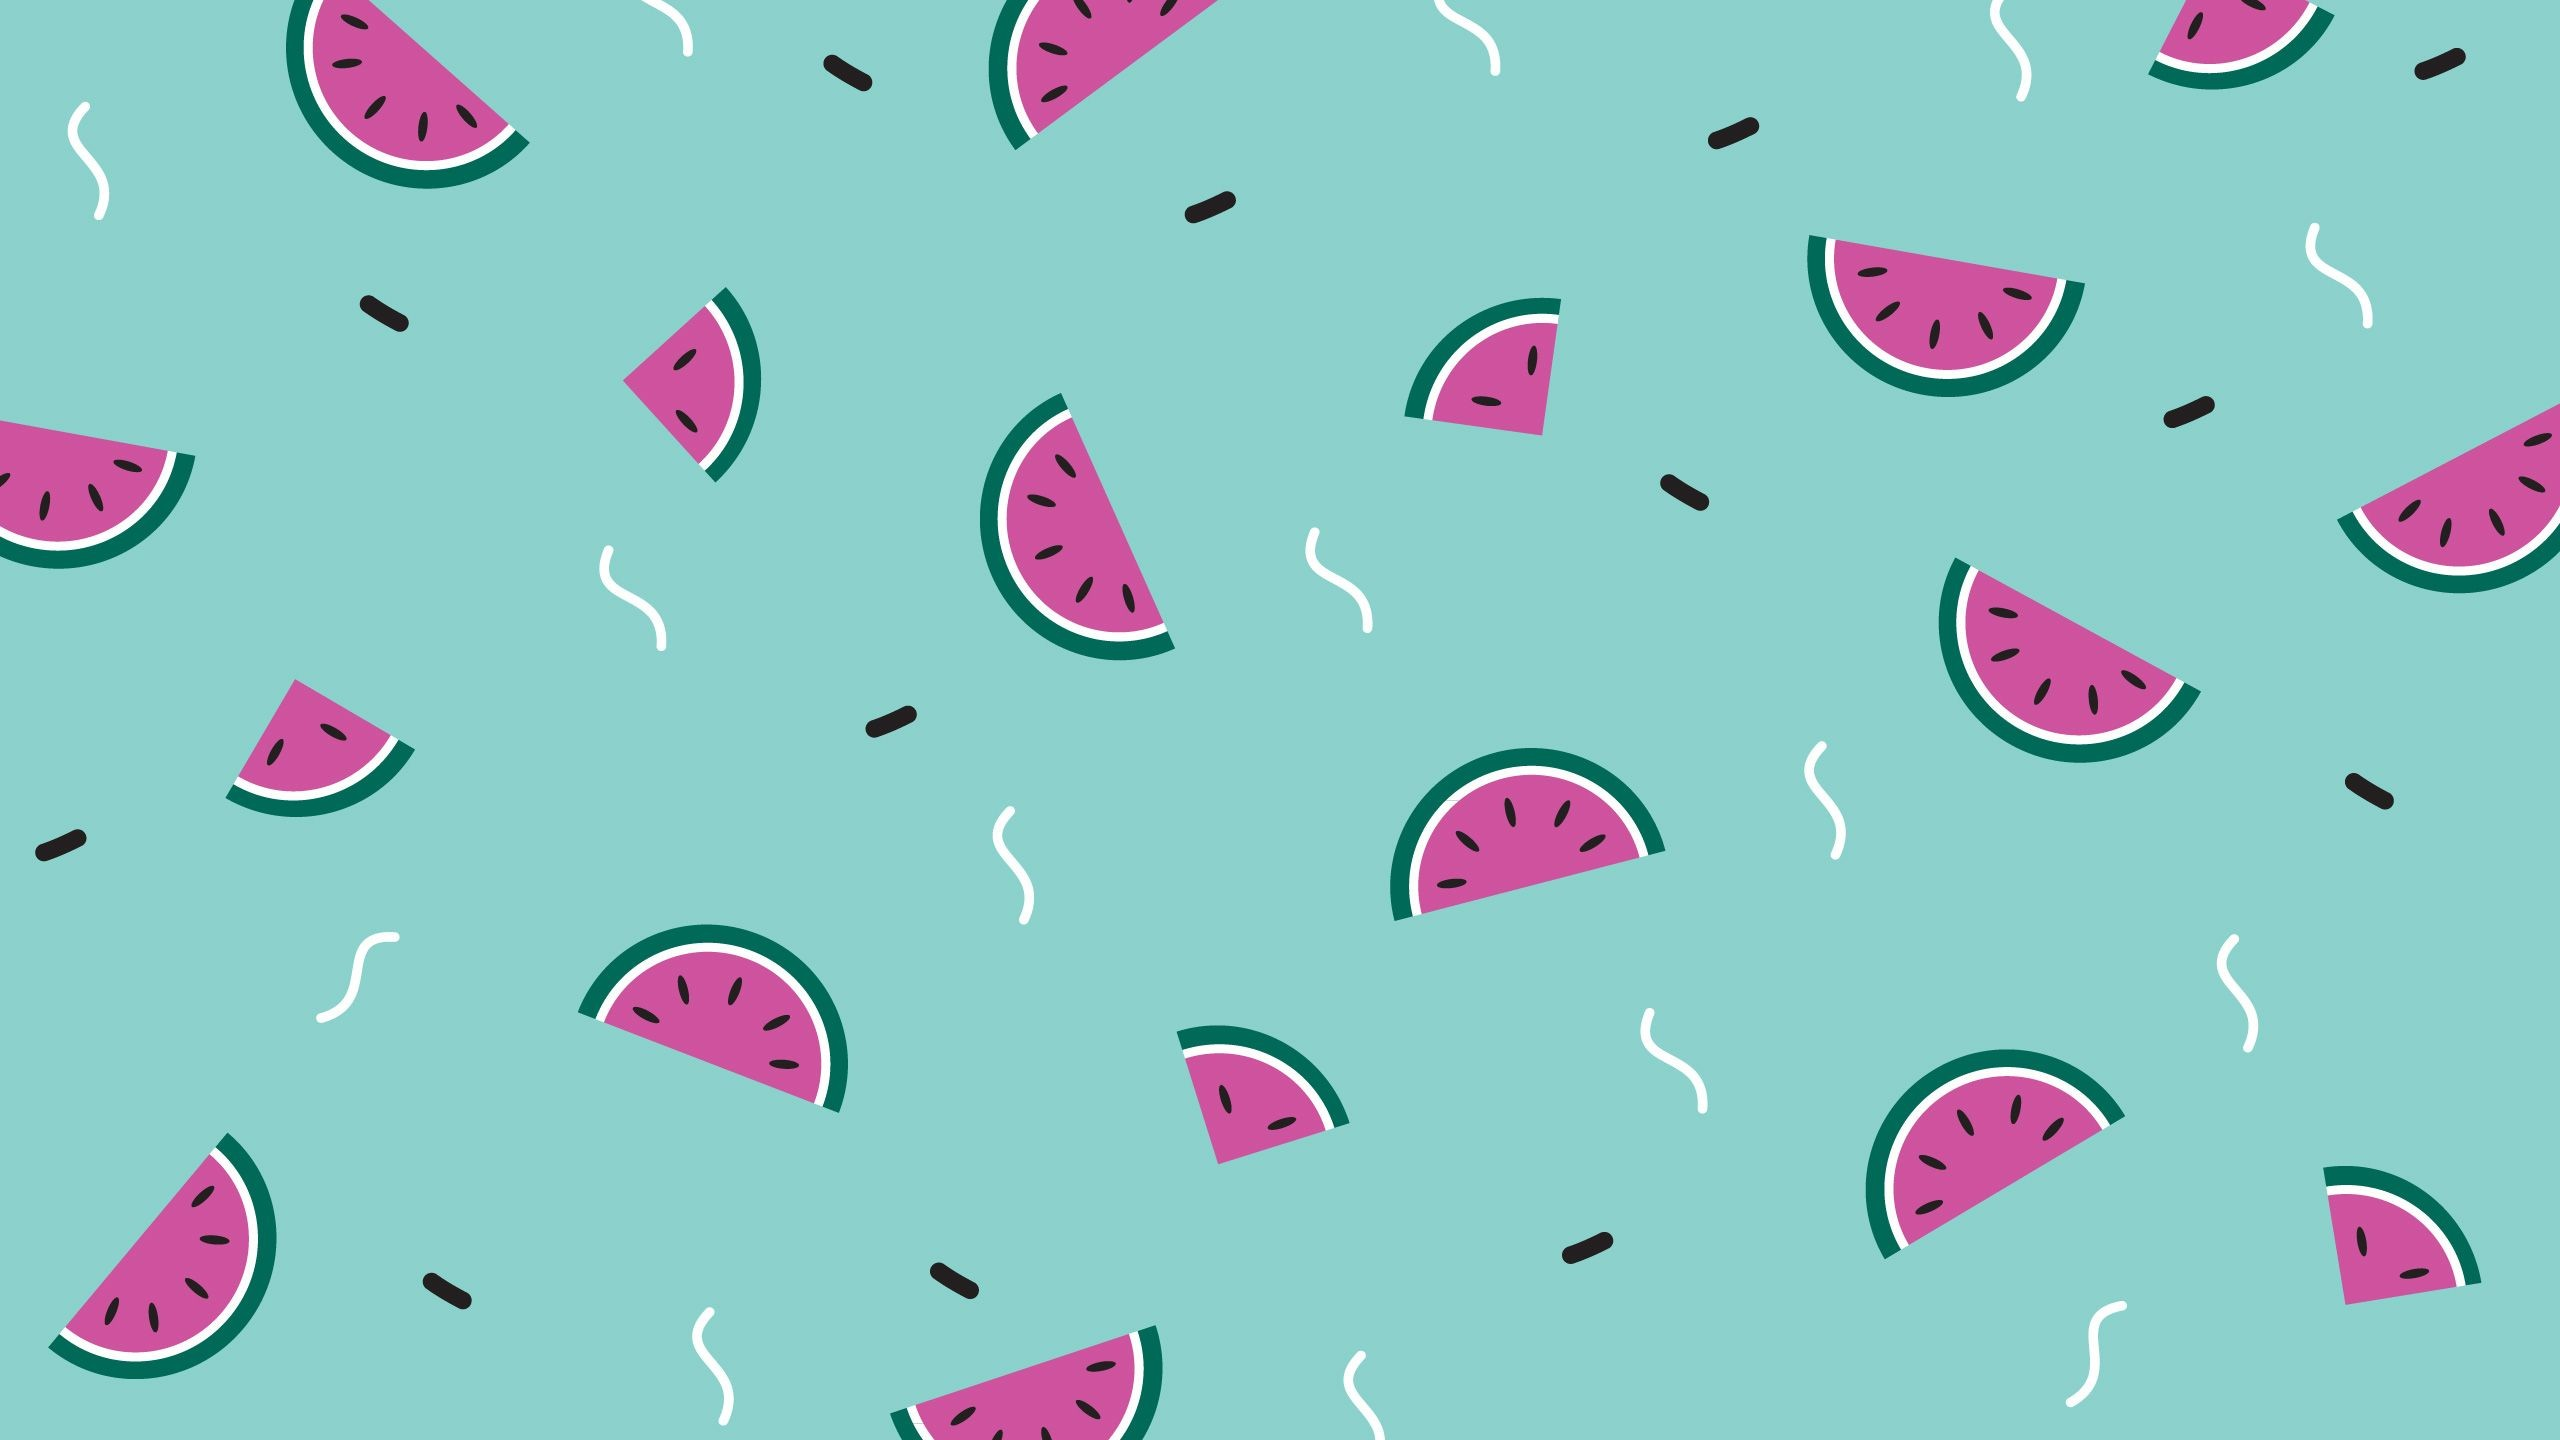 Background Wallpaper For Laptop Cute